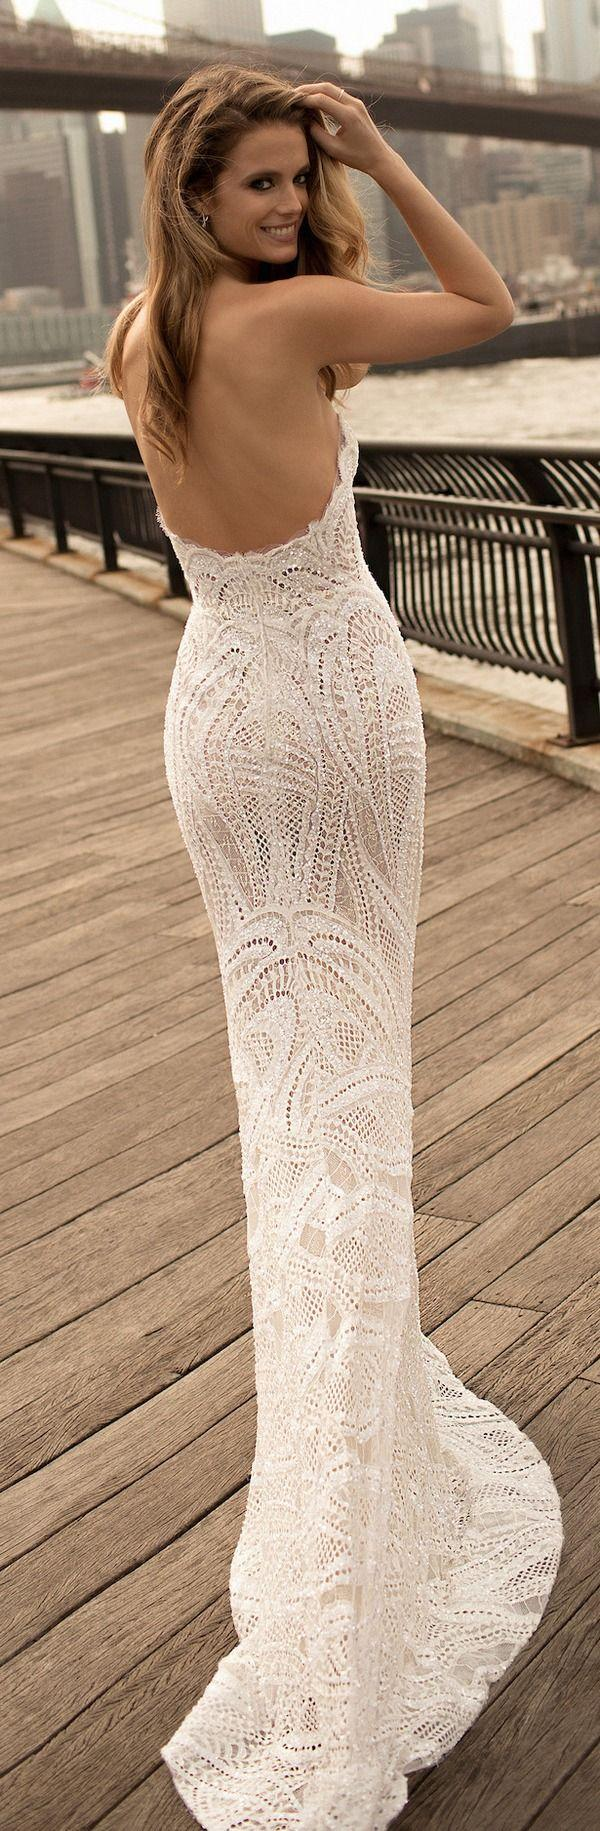 زفاف - Berta Spring Wedding Dresses 2018